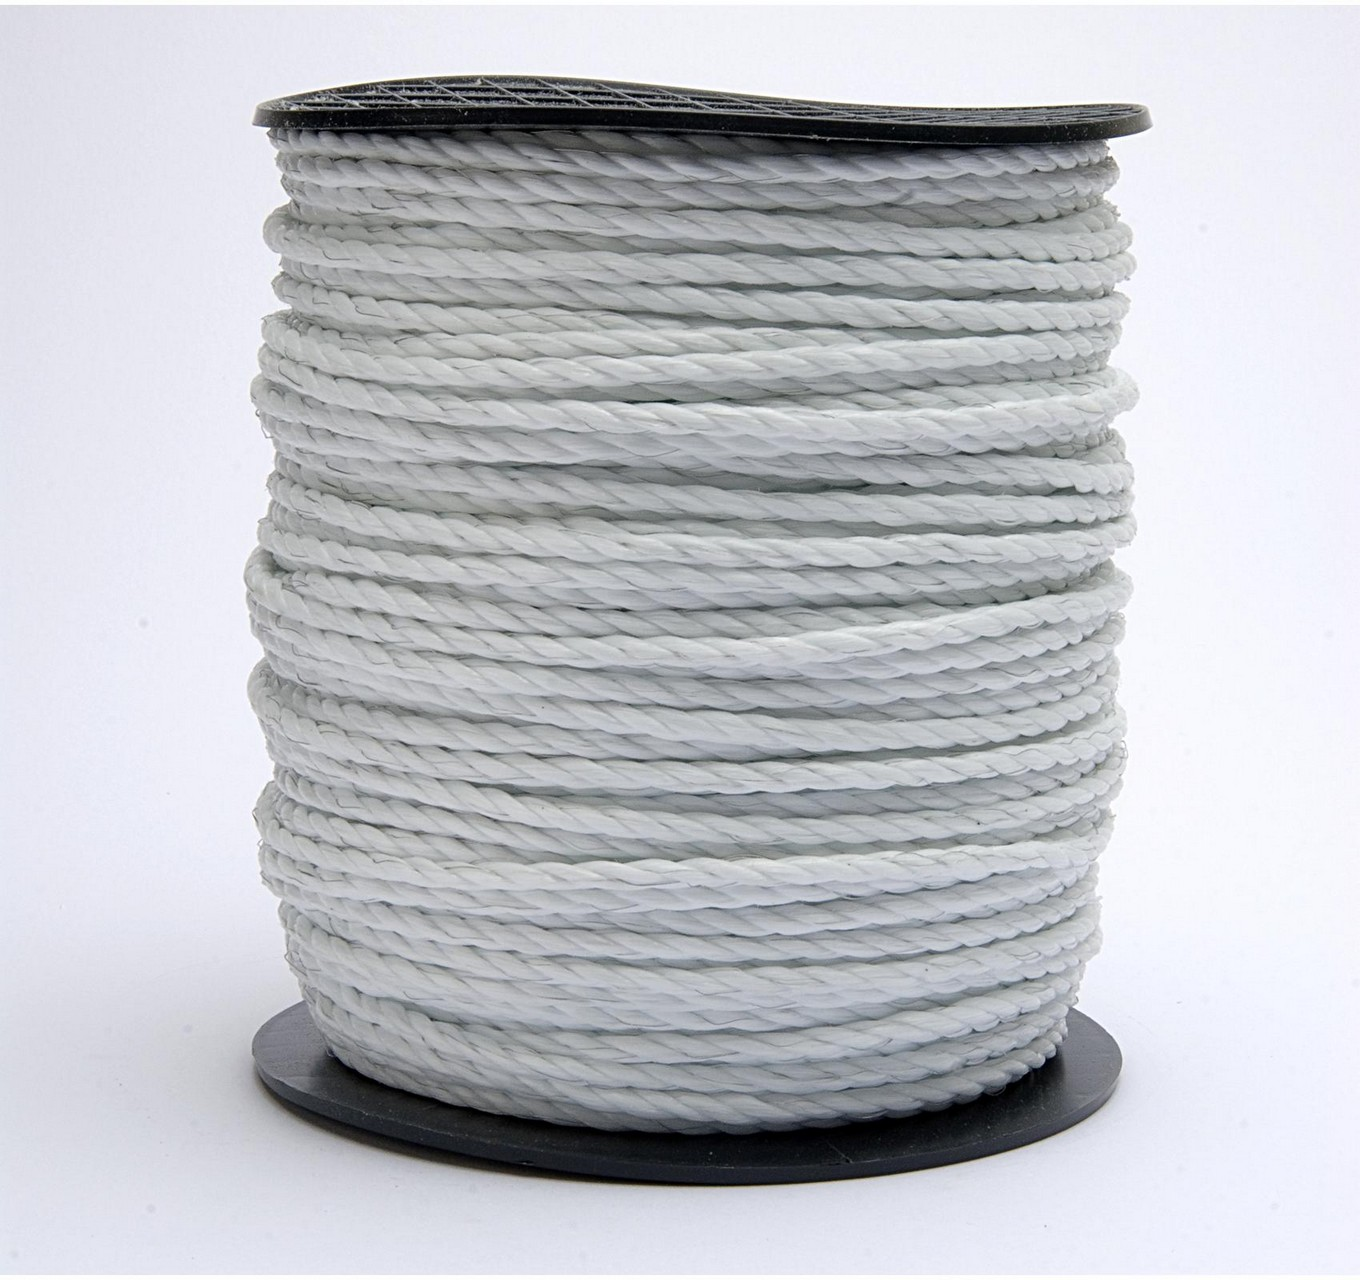 Paddock Rope 6mm x 200m